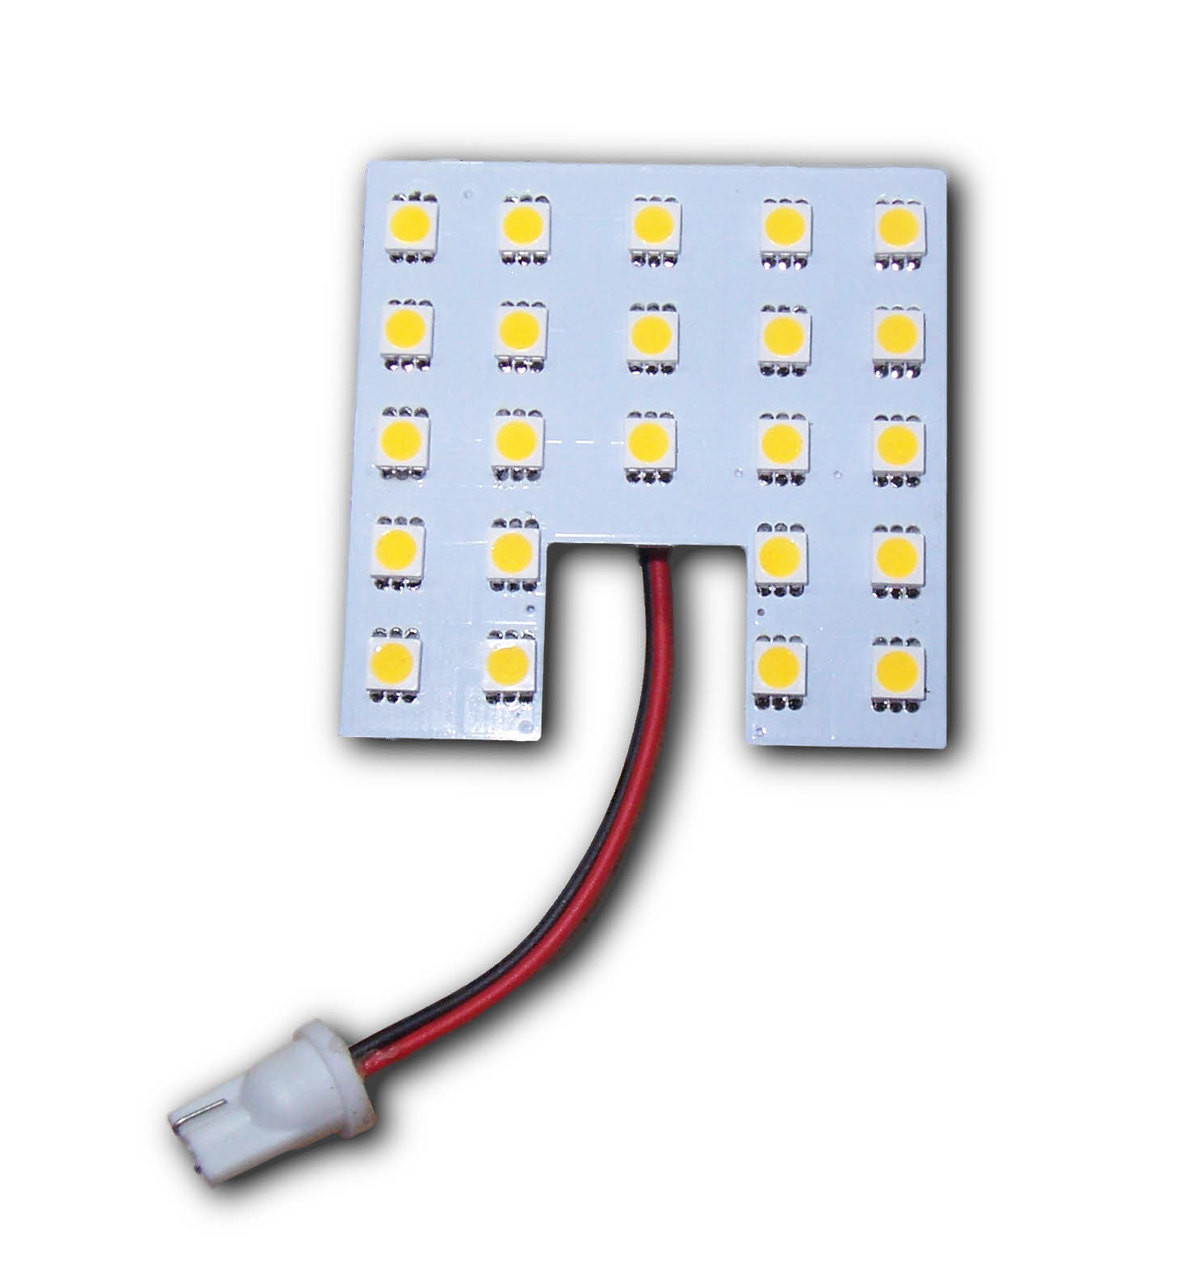 T10 Wedge Base LED (W2.1x9.5d) Example